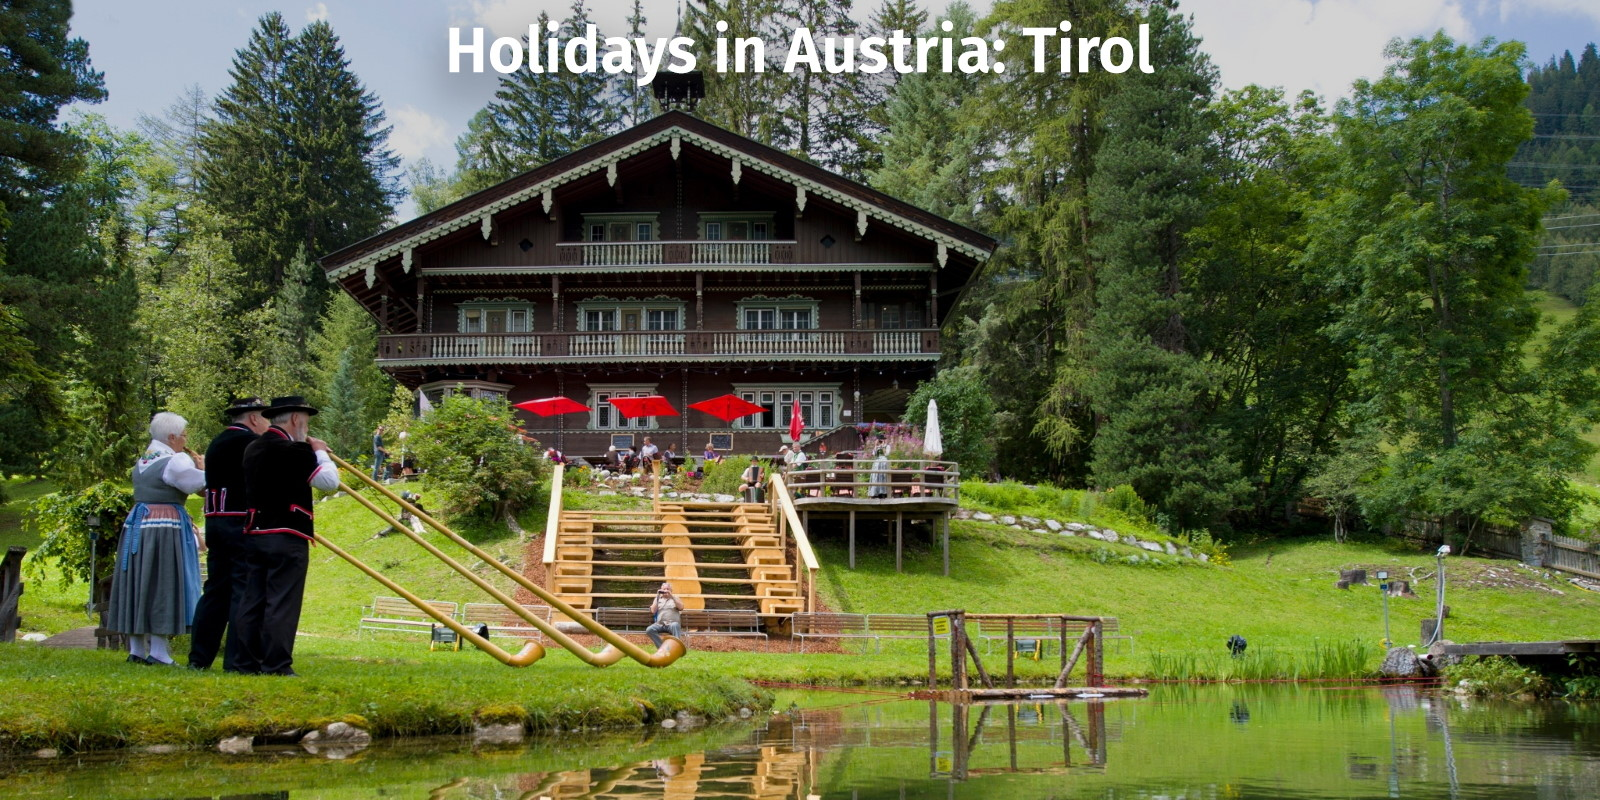 Summer in Austria: Tirol